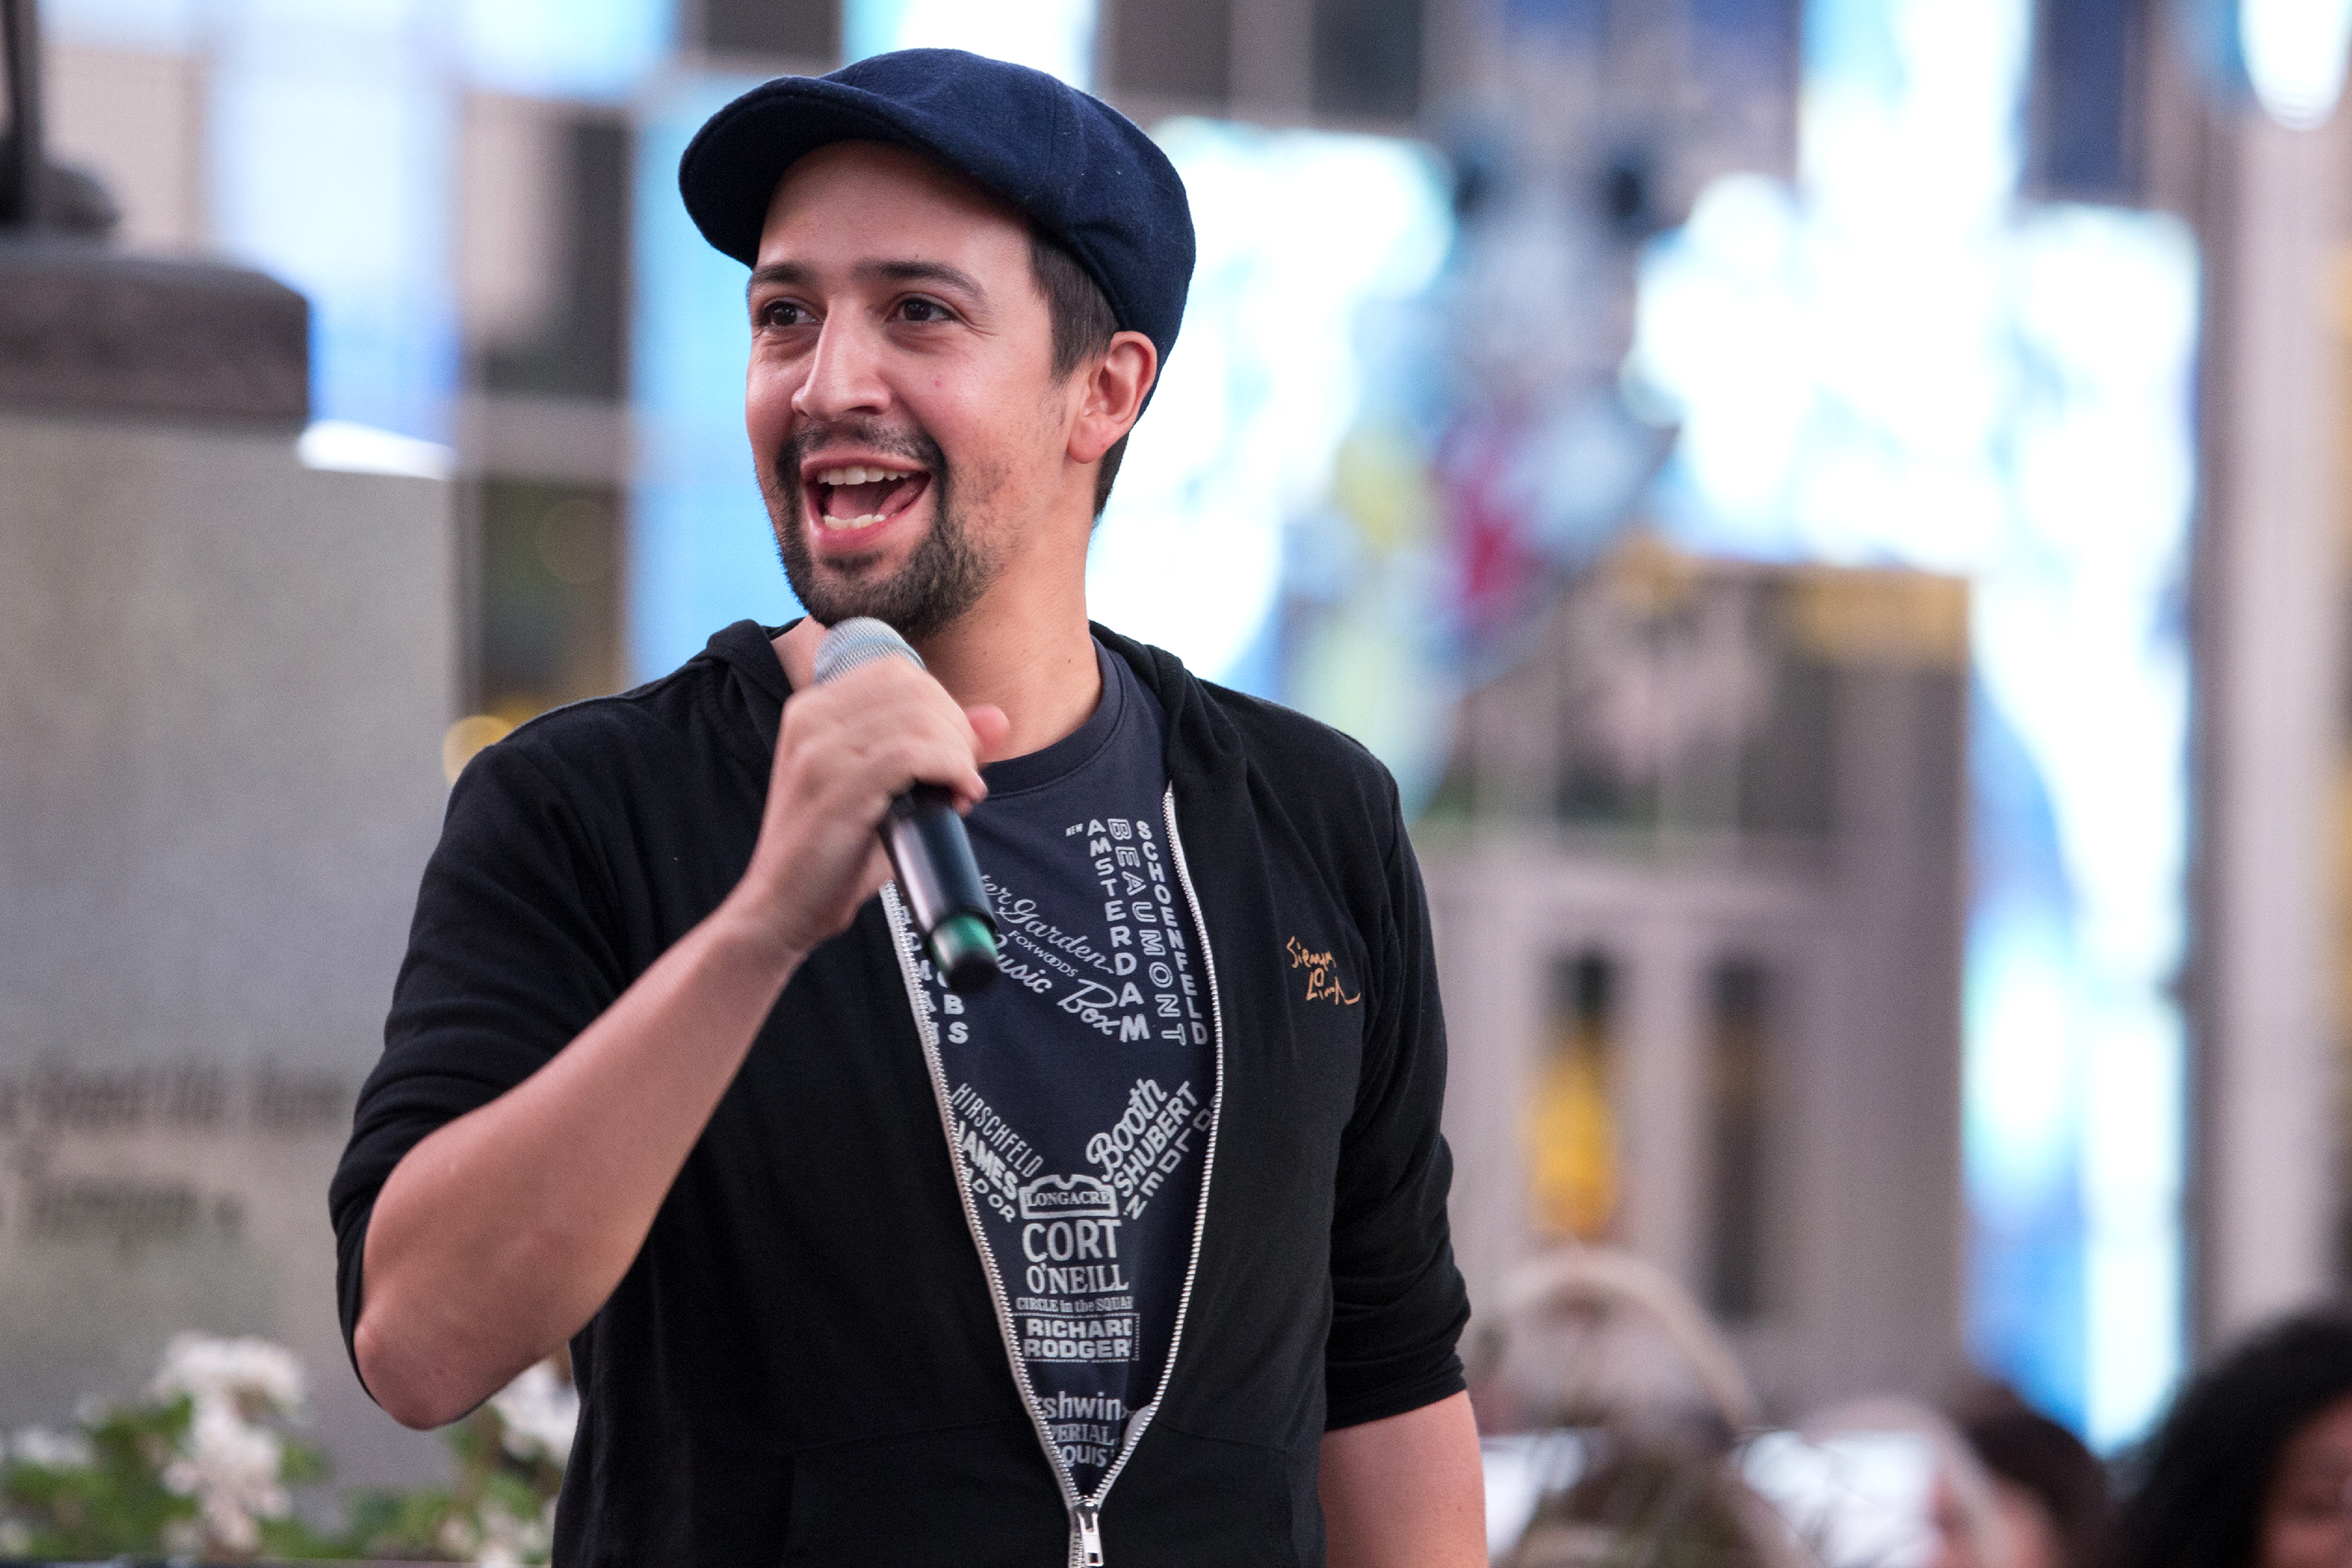 NEW YORK, NY - SEPTEMBER 15:  Lin-Manuel Miranda attends Viva Broadway Special Event at Duffy Square on September 15, 2017 in New York City.  (Photo by Santiago Felipe/Getty Images)